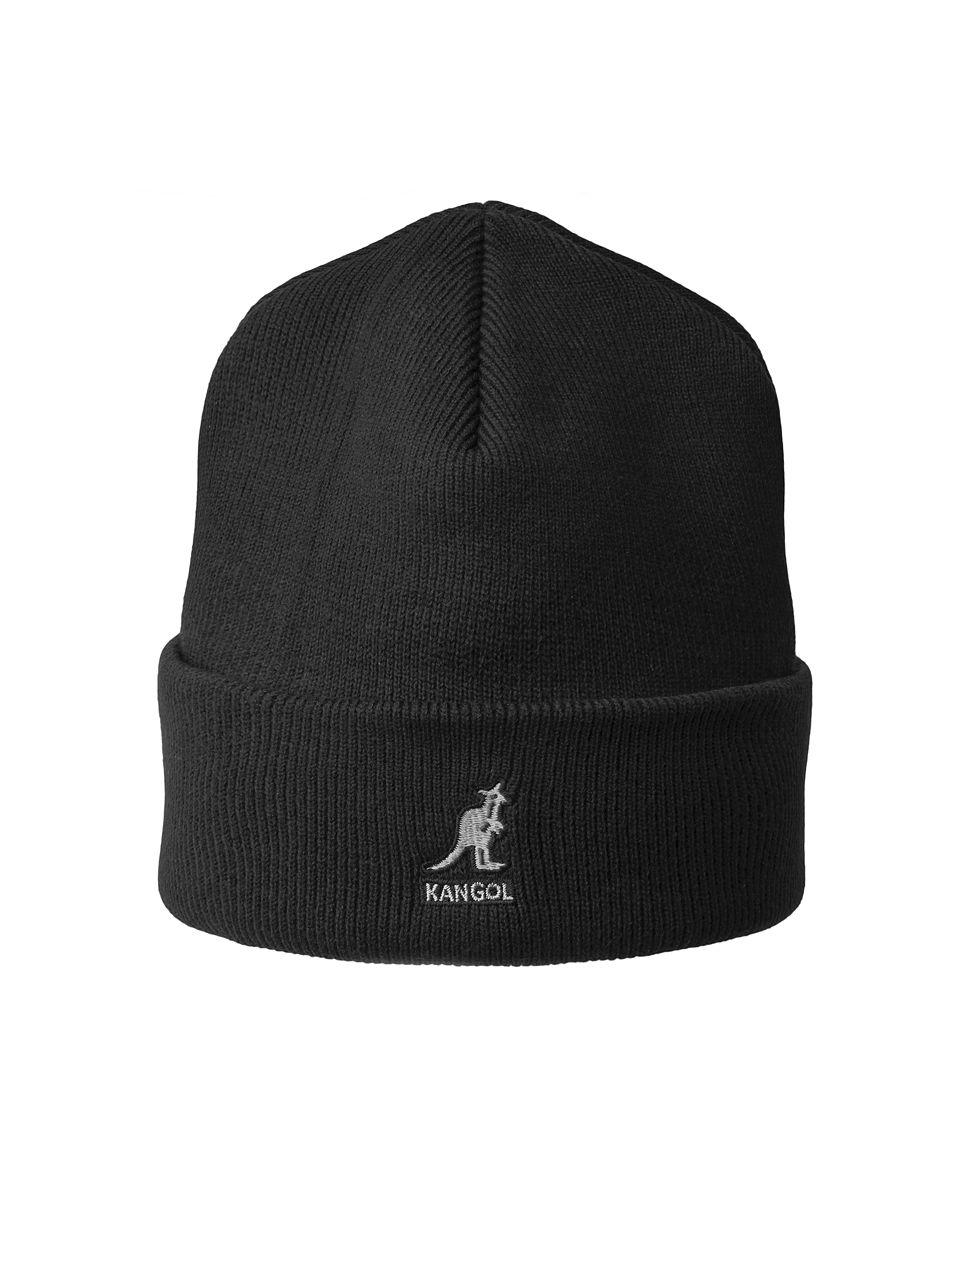 Kangol - Black Signature Beanie for Men - Lyst. View fullscreen 933296787173